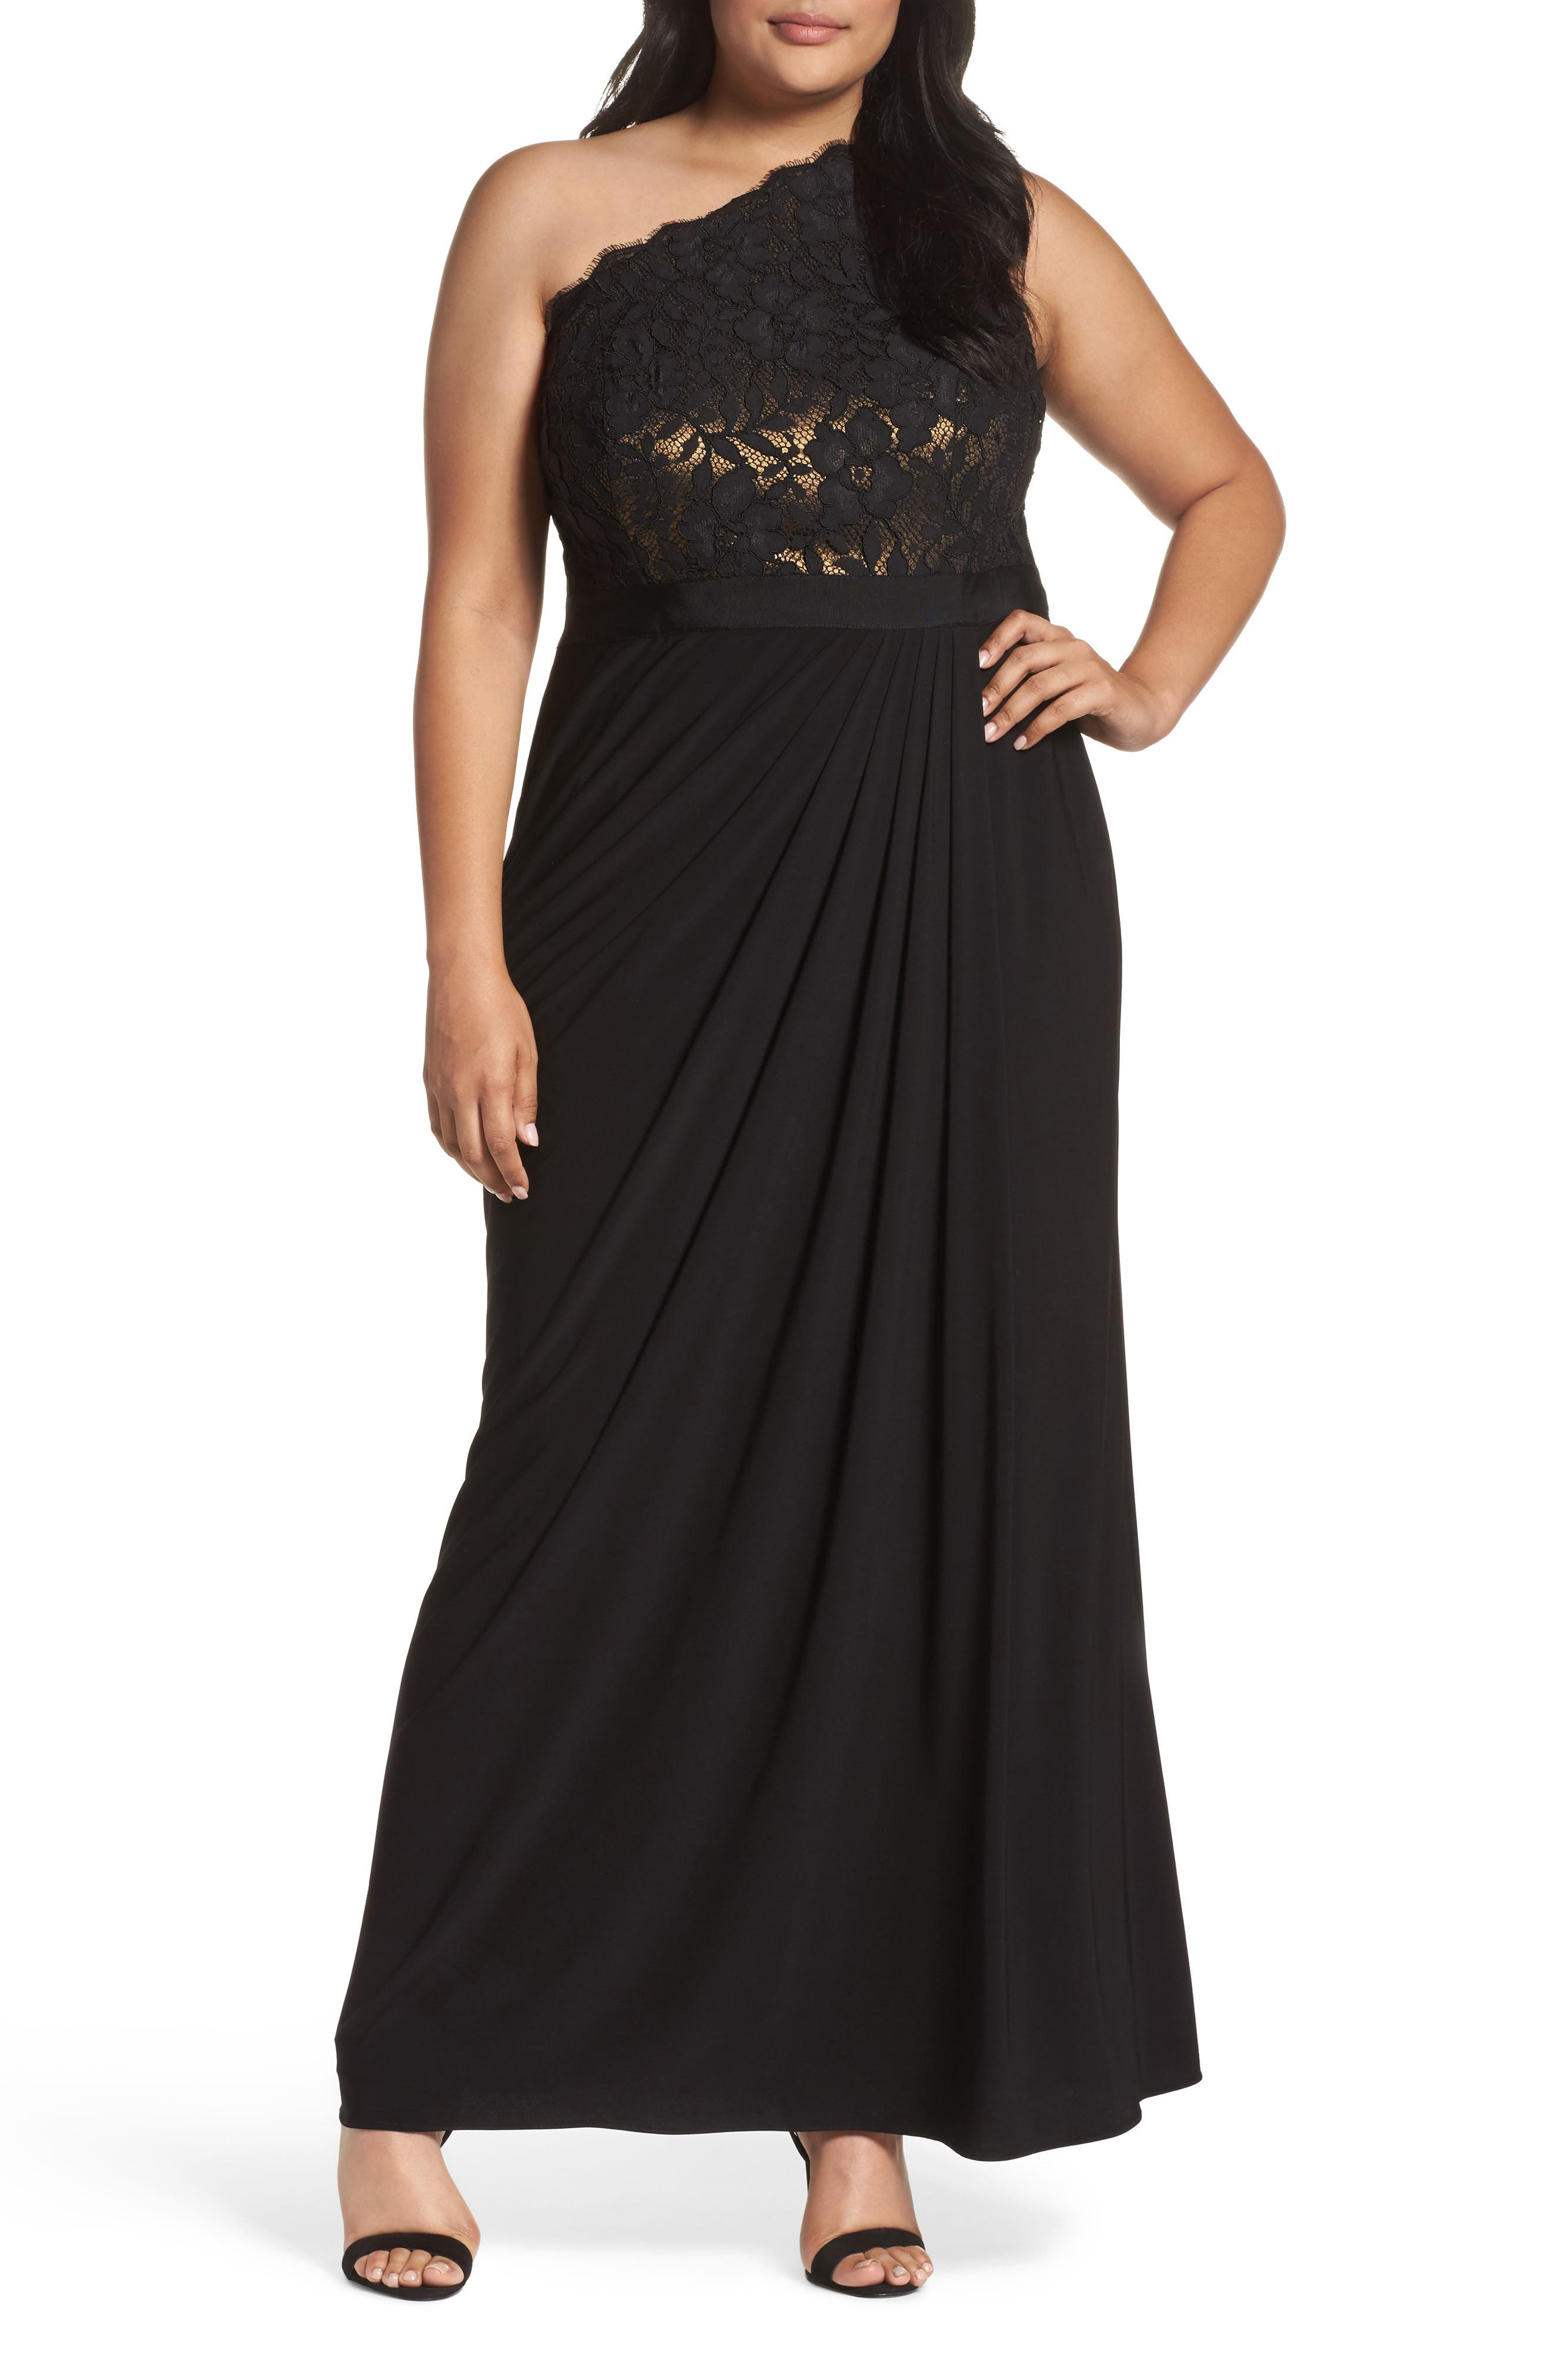 Main Image - Adrianna Papell Metallic Lined Lace & Chiffon One-Shoulder Gown (Plus Size)